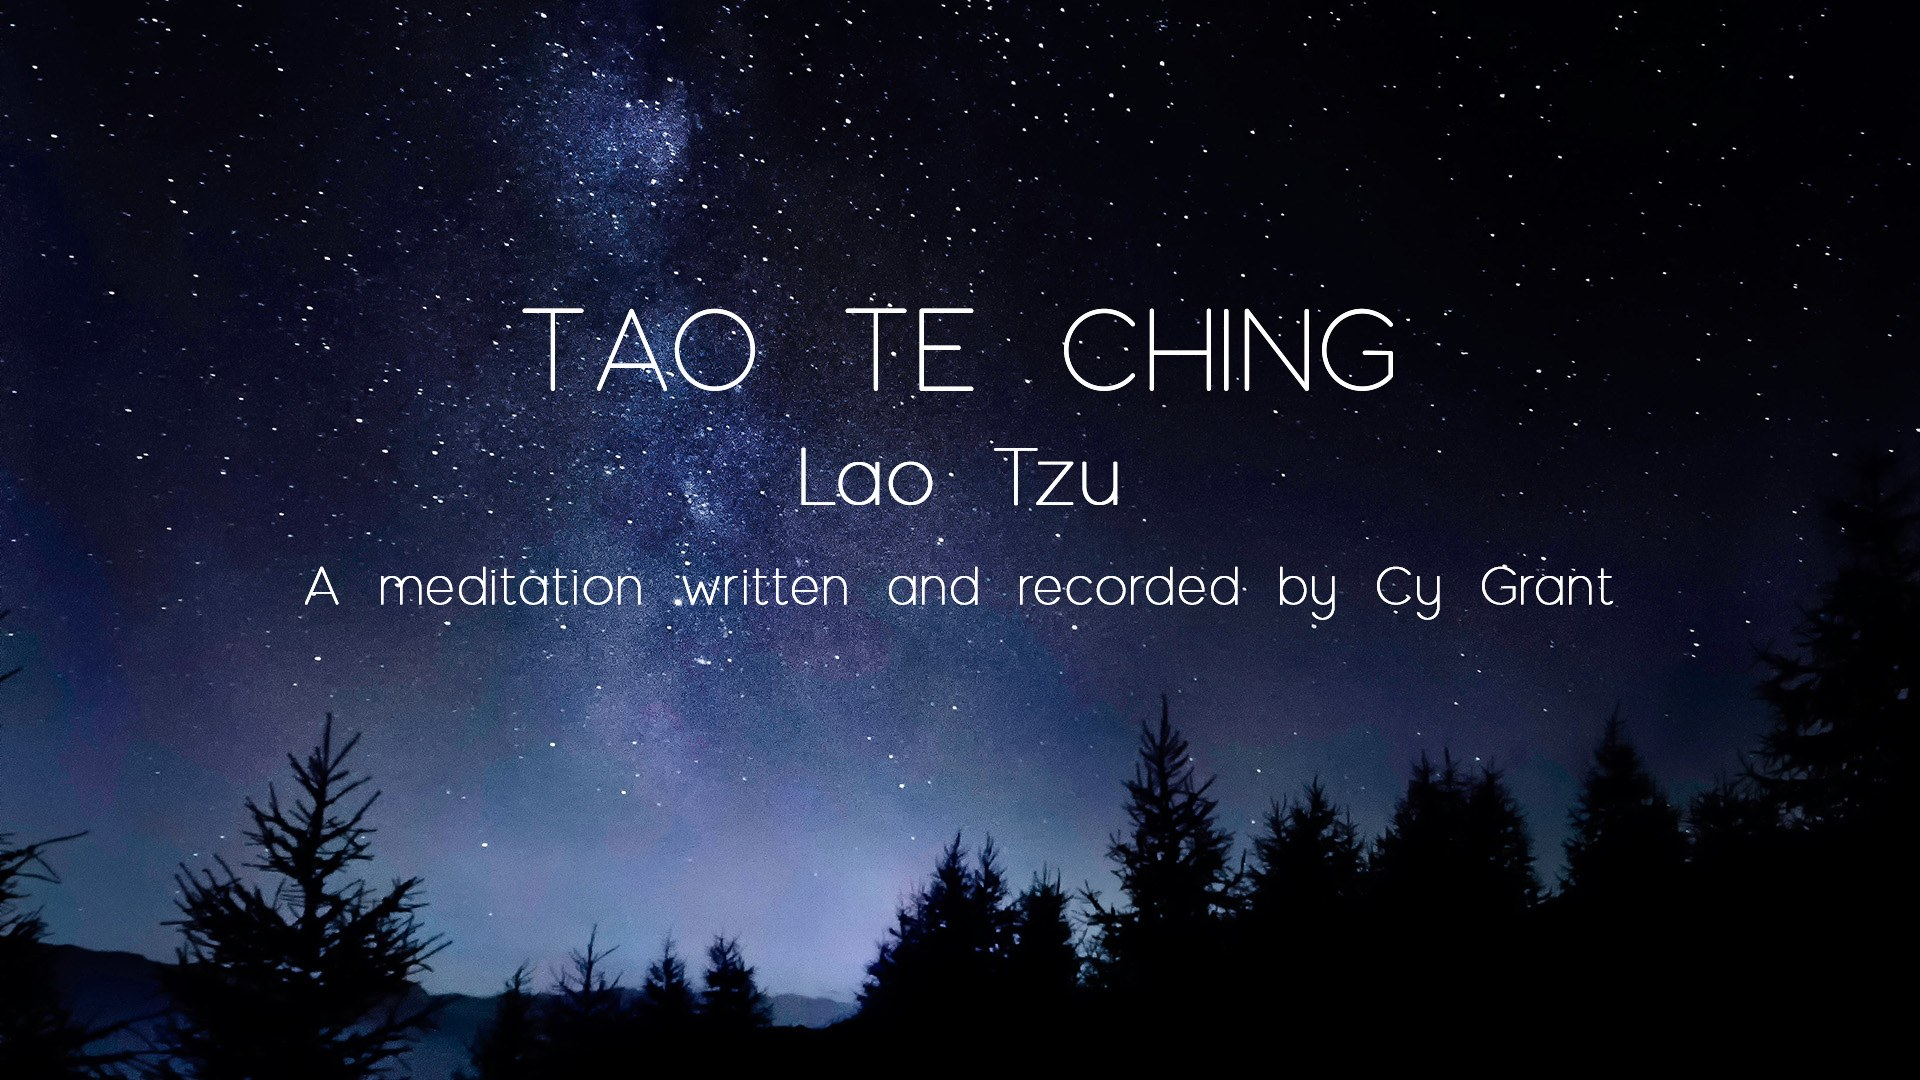 Deep blue starry sky over forest as title page for Tao te Ching video